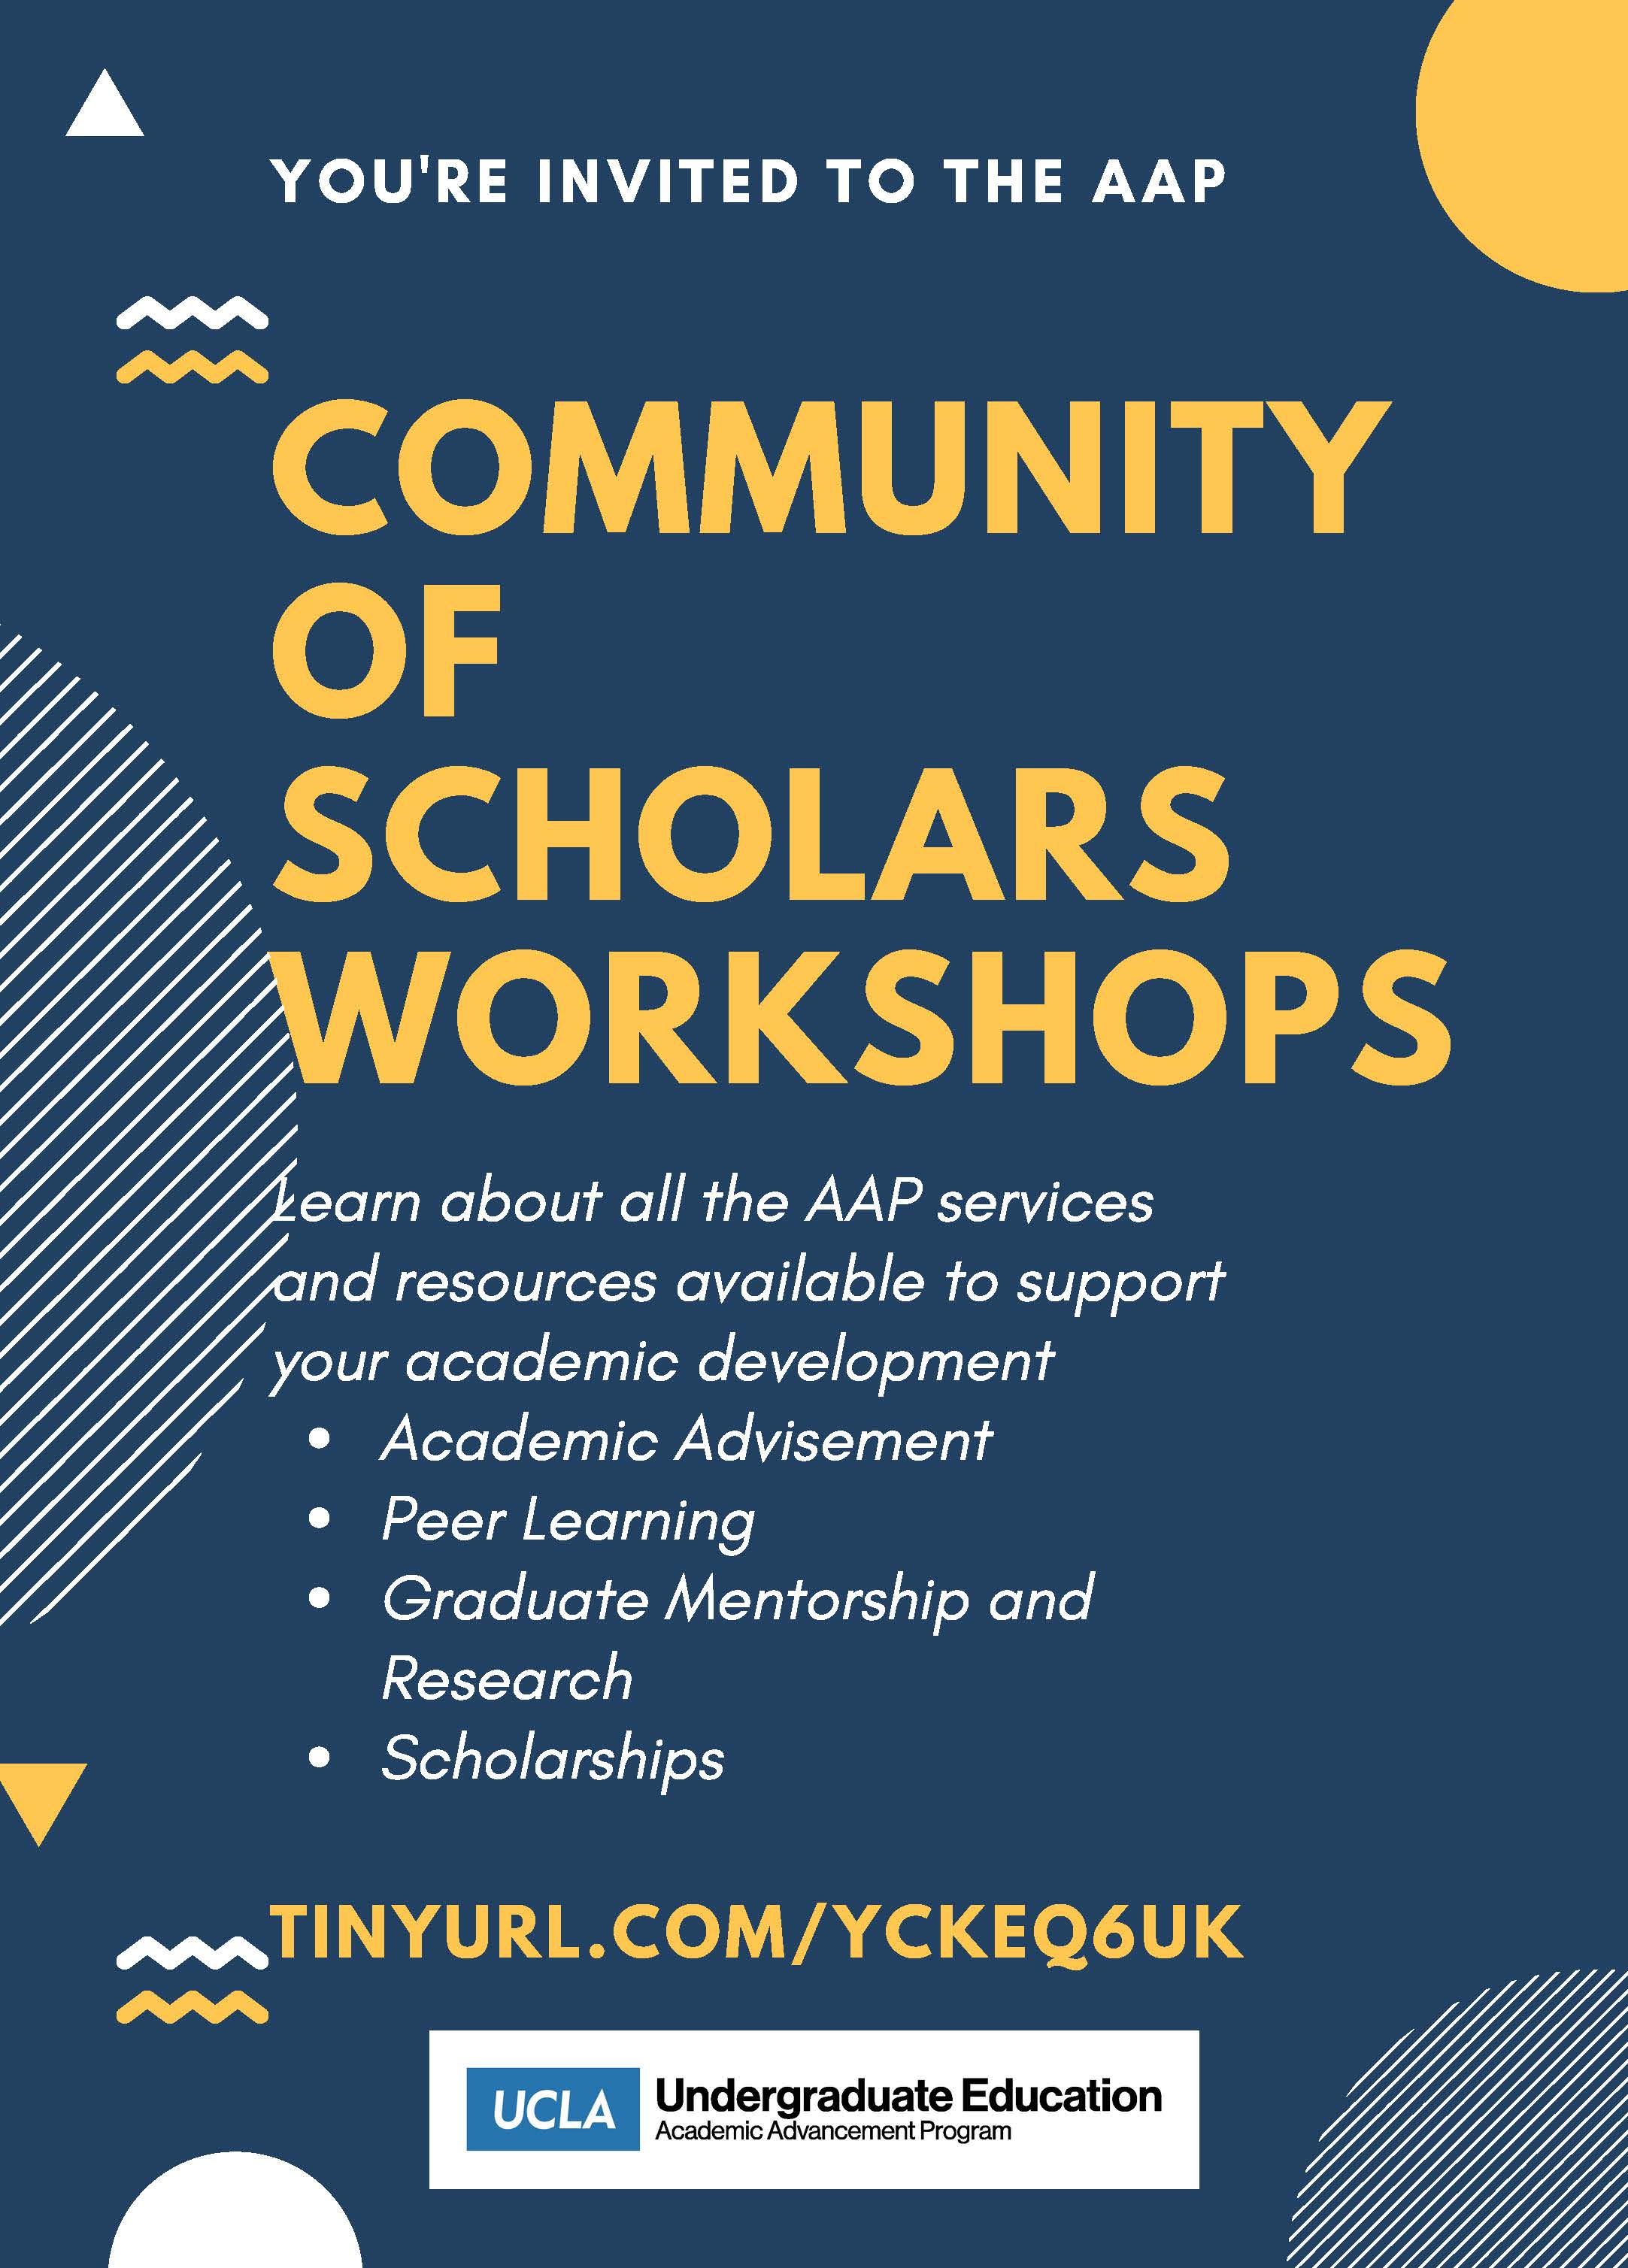 you're invited to the AAP community of scholars workshops - learn more